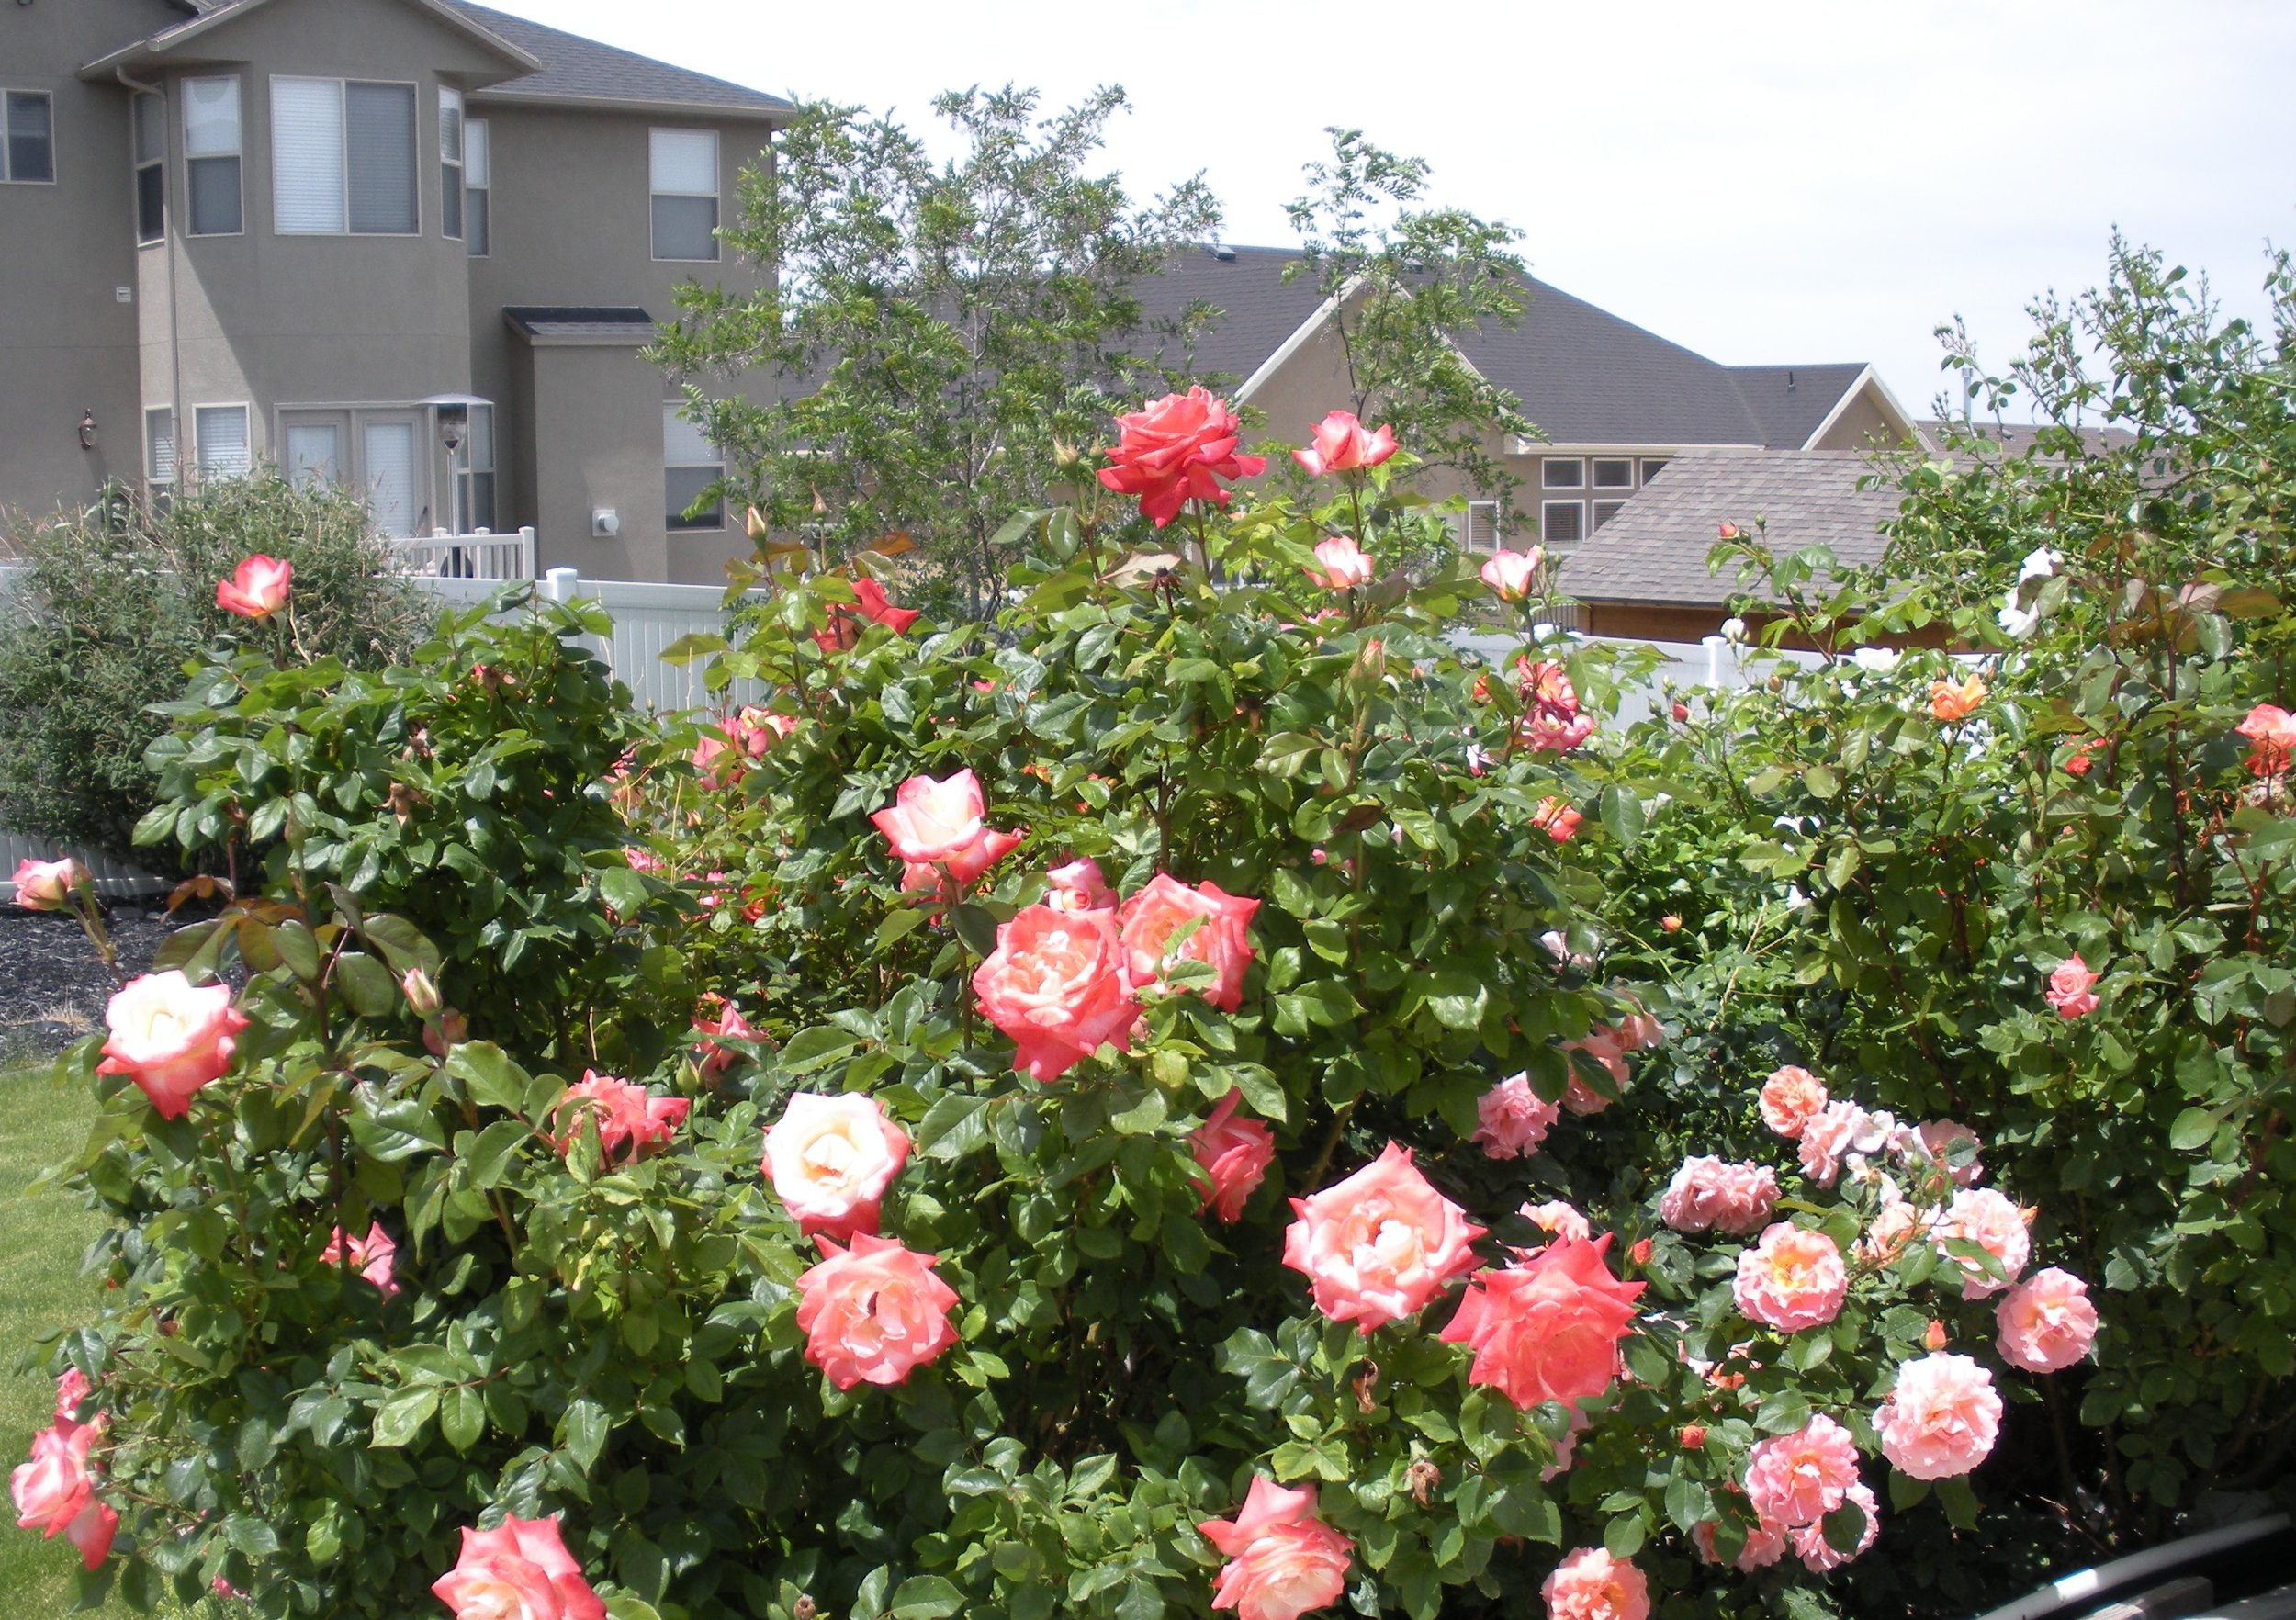 The rose garden outside my office in Herriman